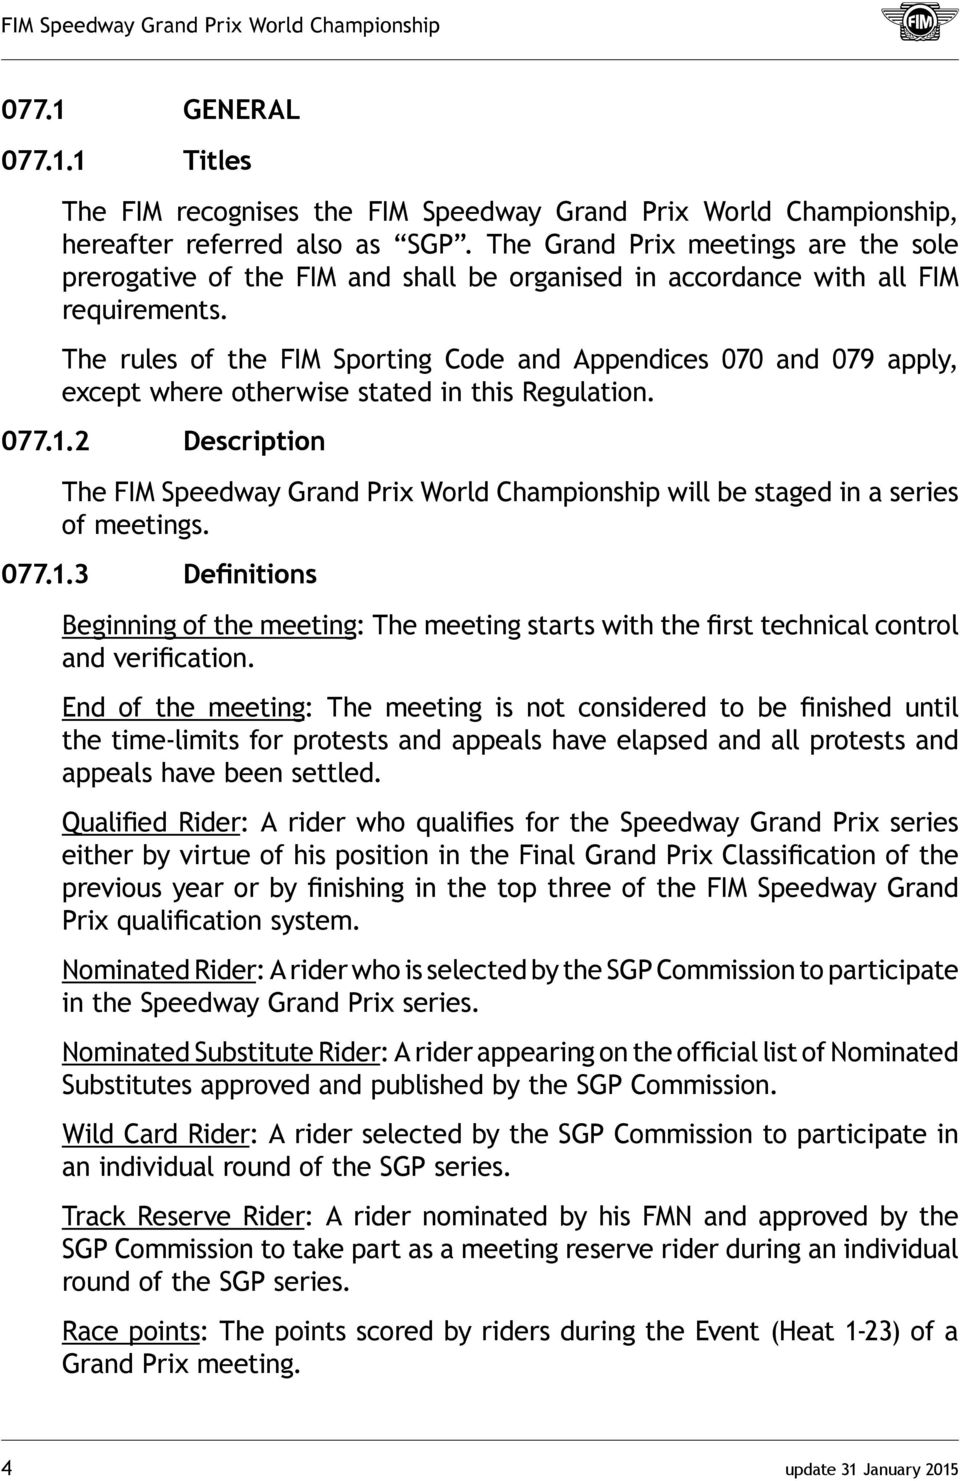 The rules of the FIM Sporting Code and Appendices 070 and 079 apply, except where otherwise stated in this Regulation. 077.1.